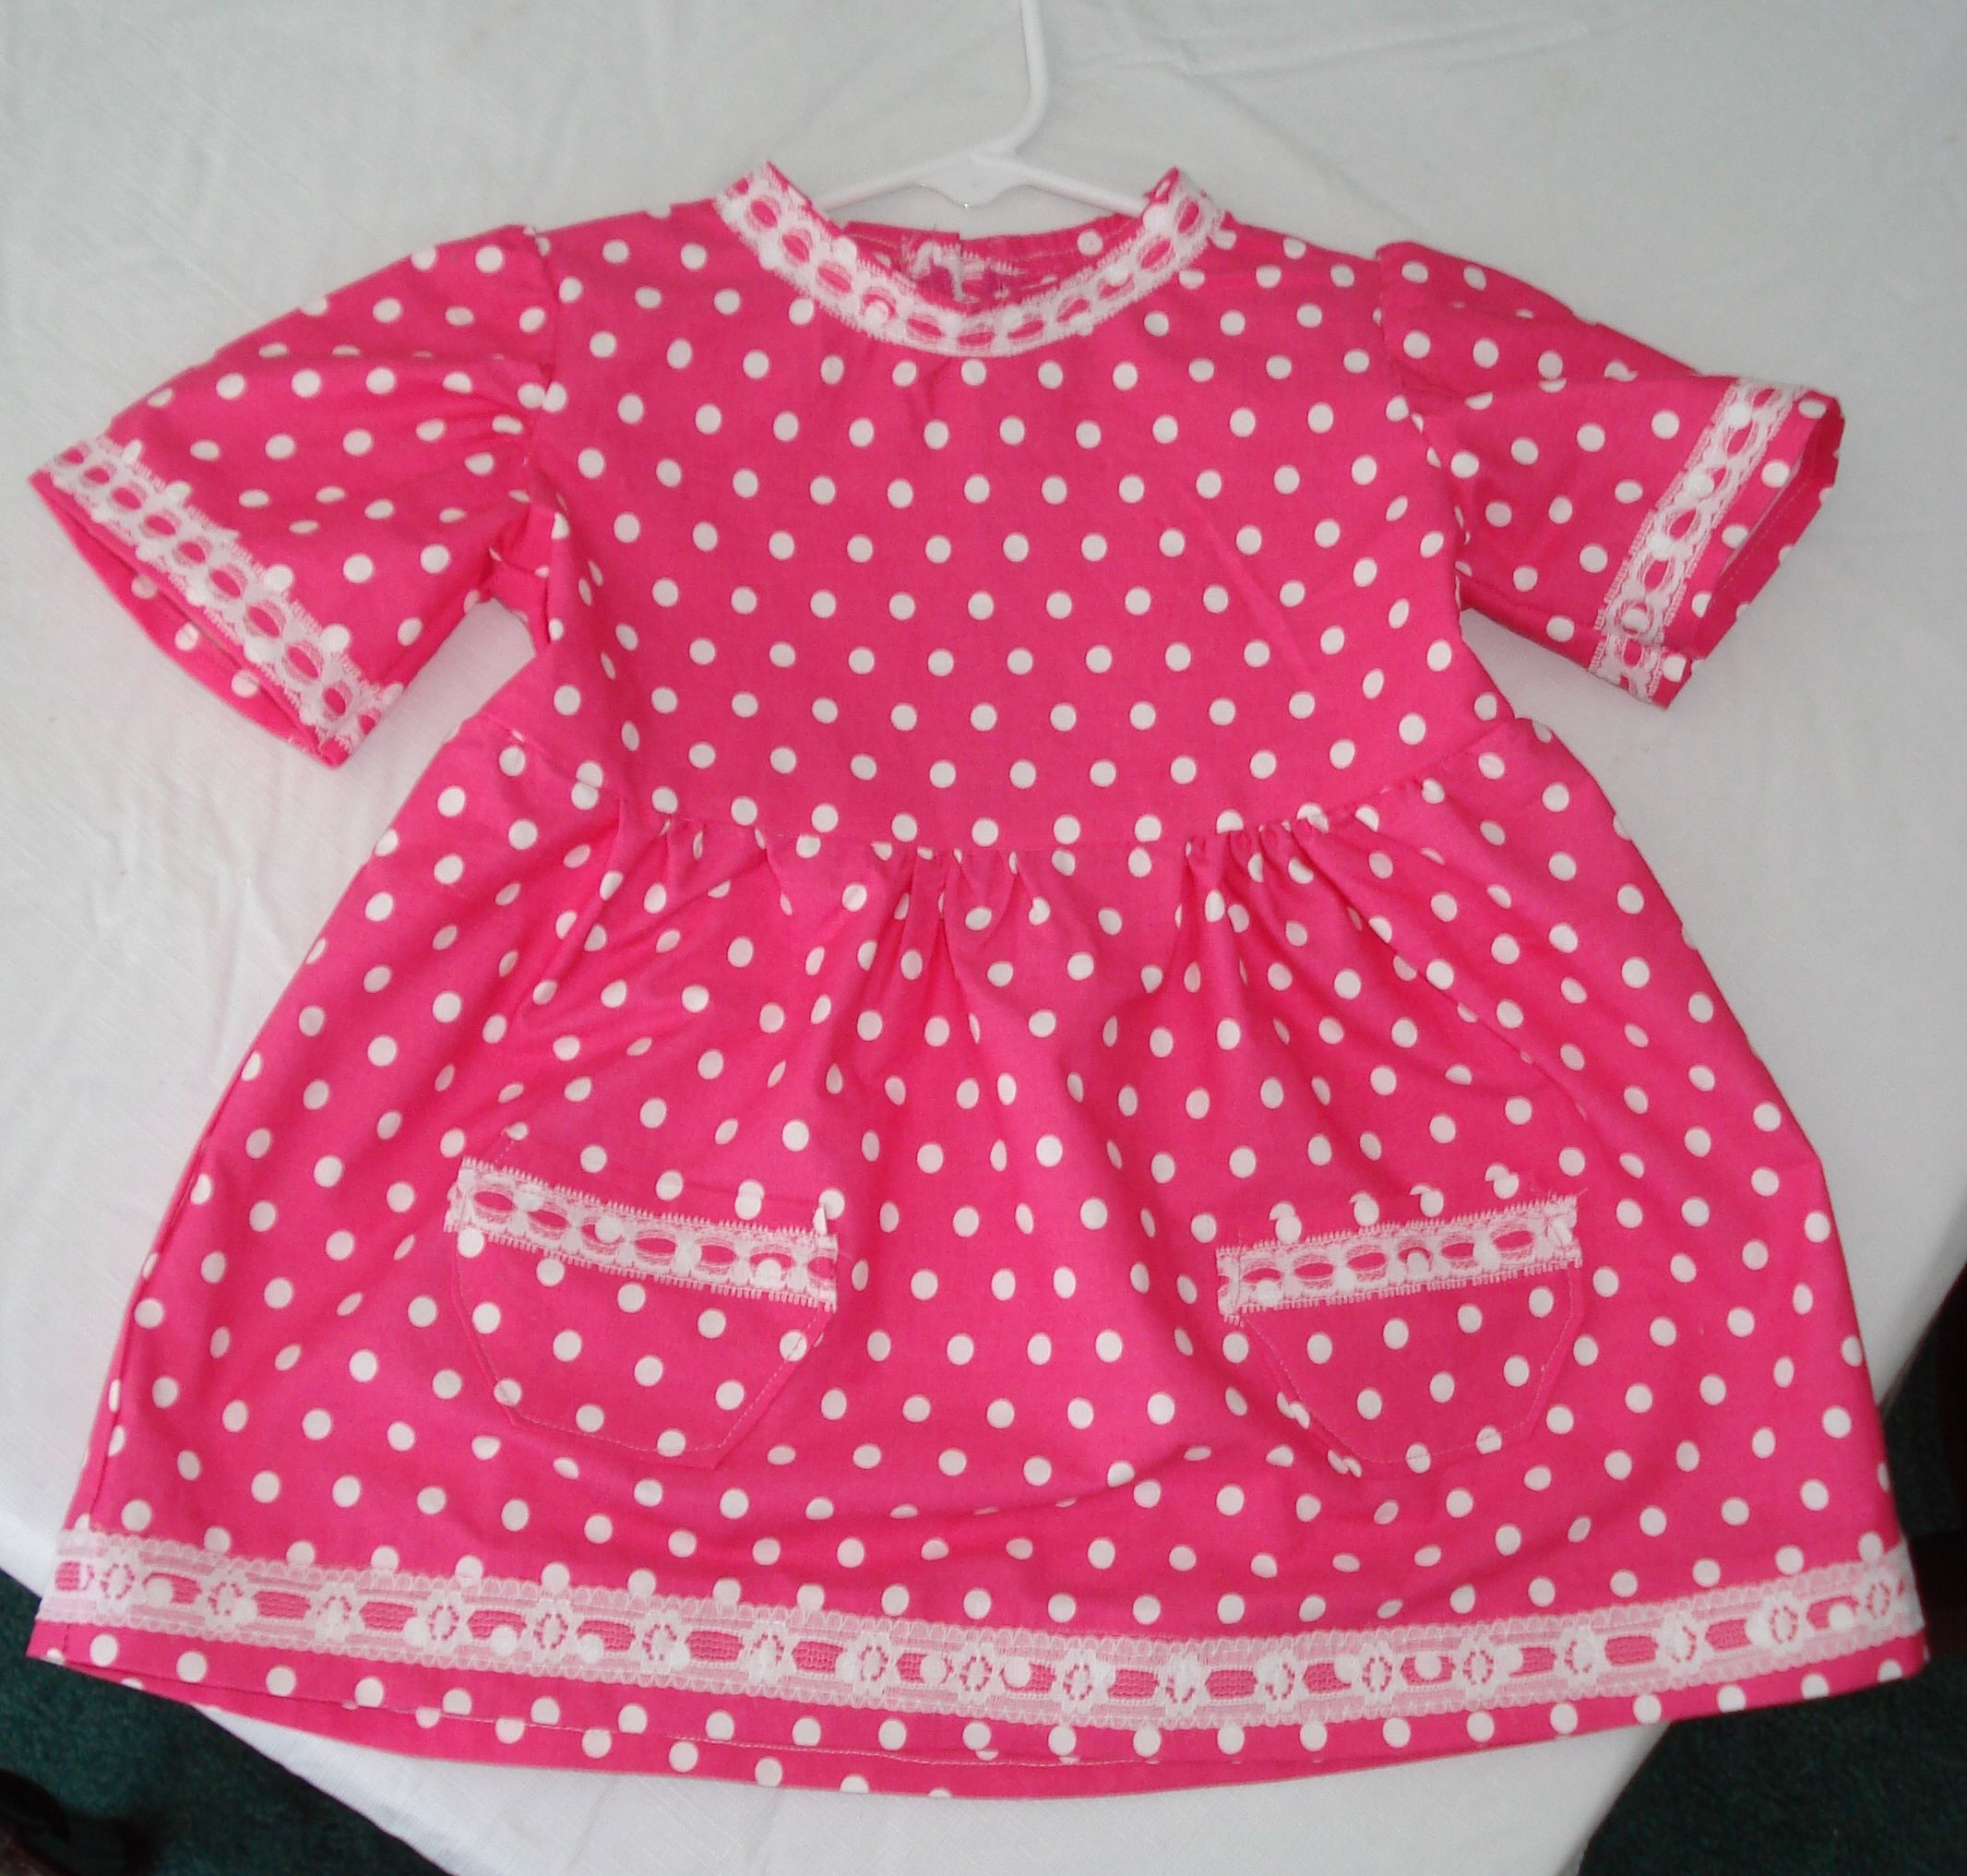 12 months pink polkadots dress for 1 year old with images